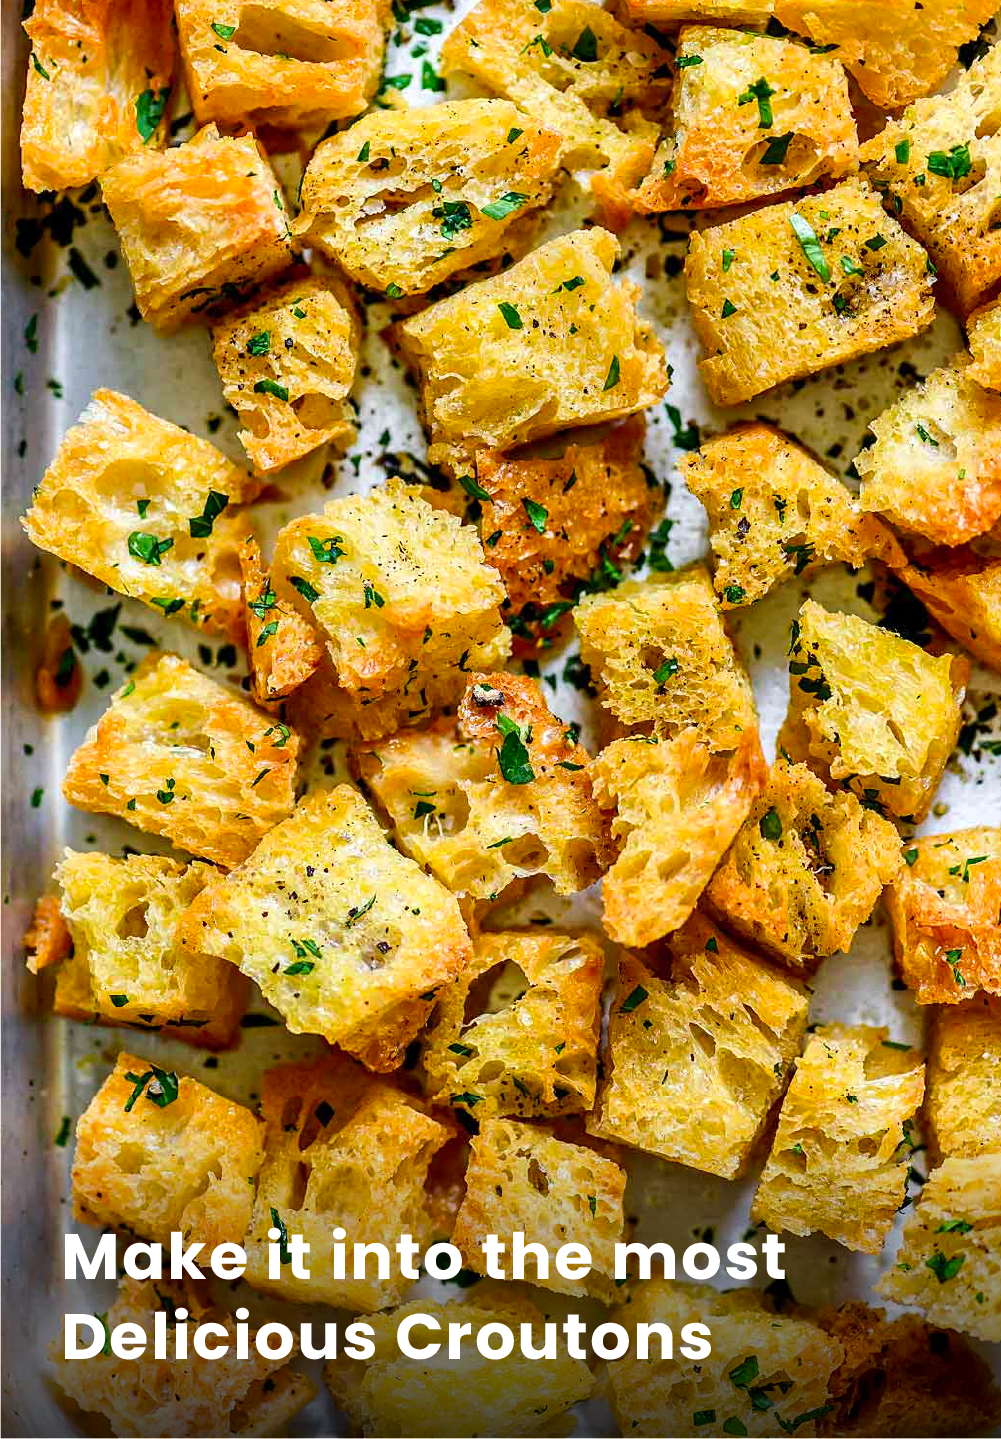 Make it into the most Delicious Croutons